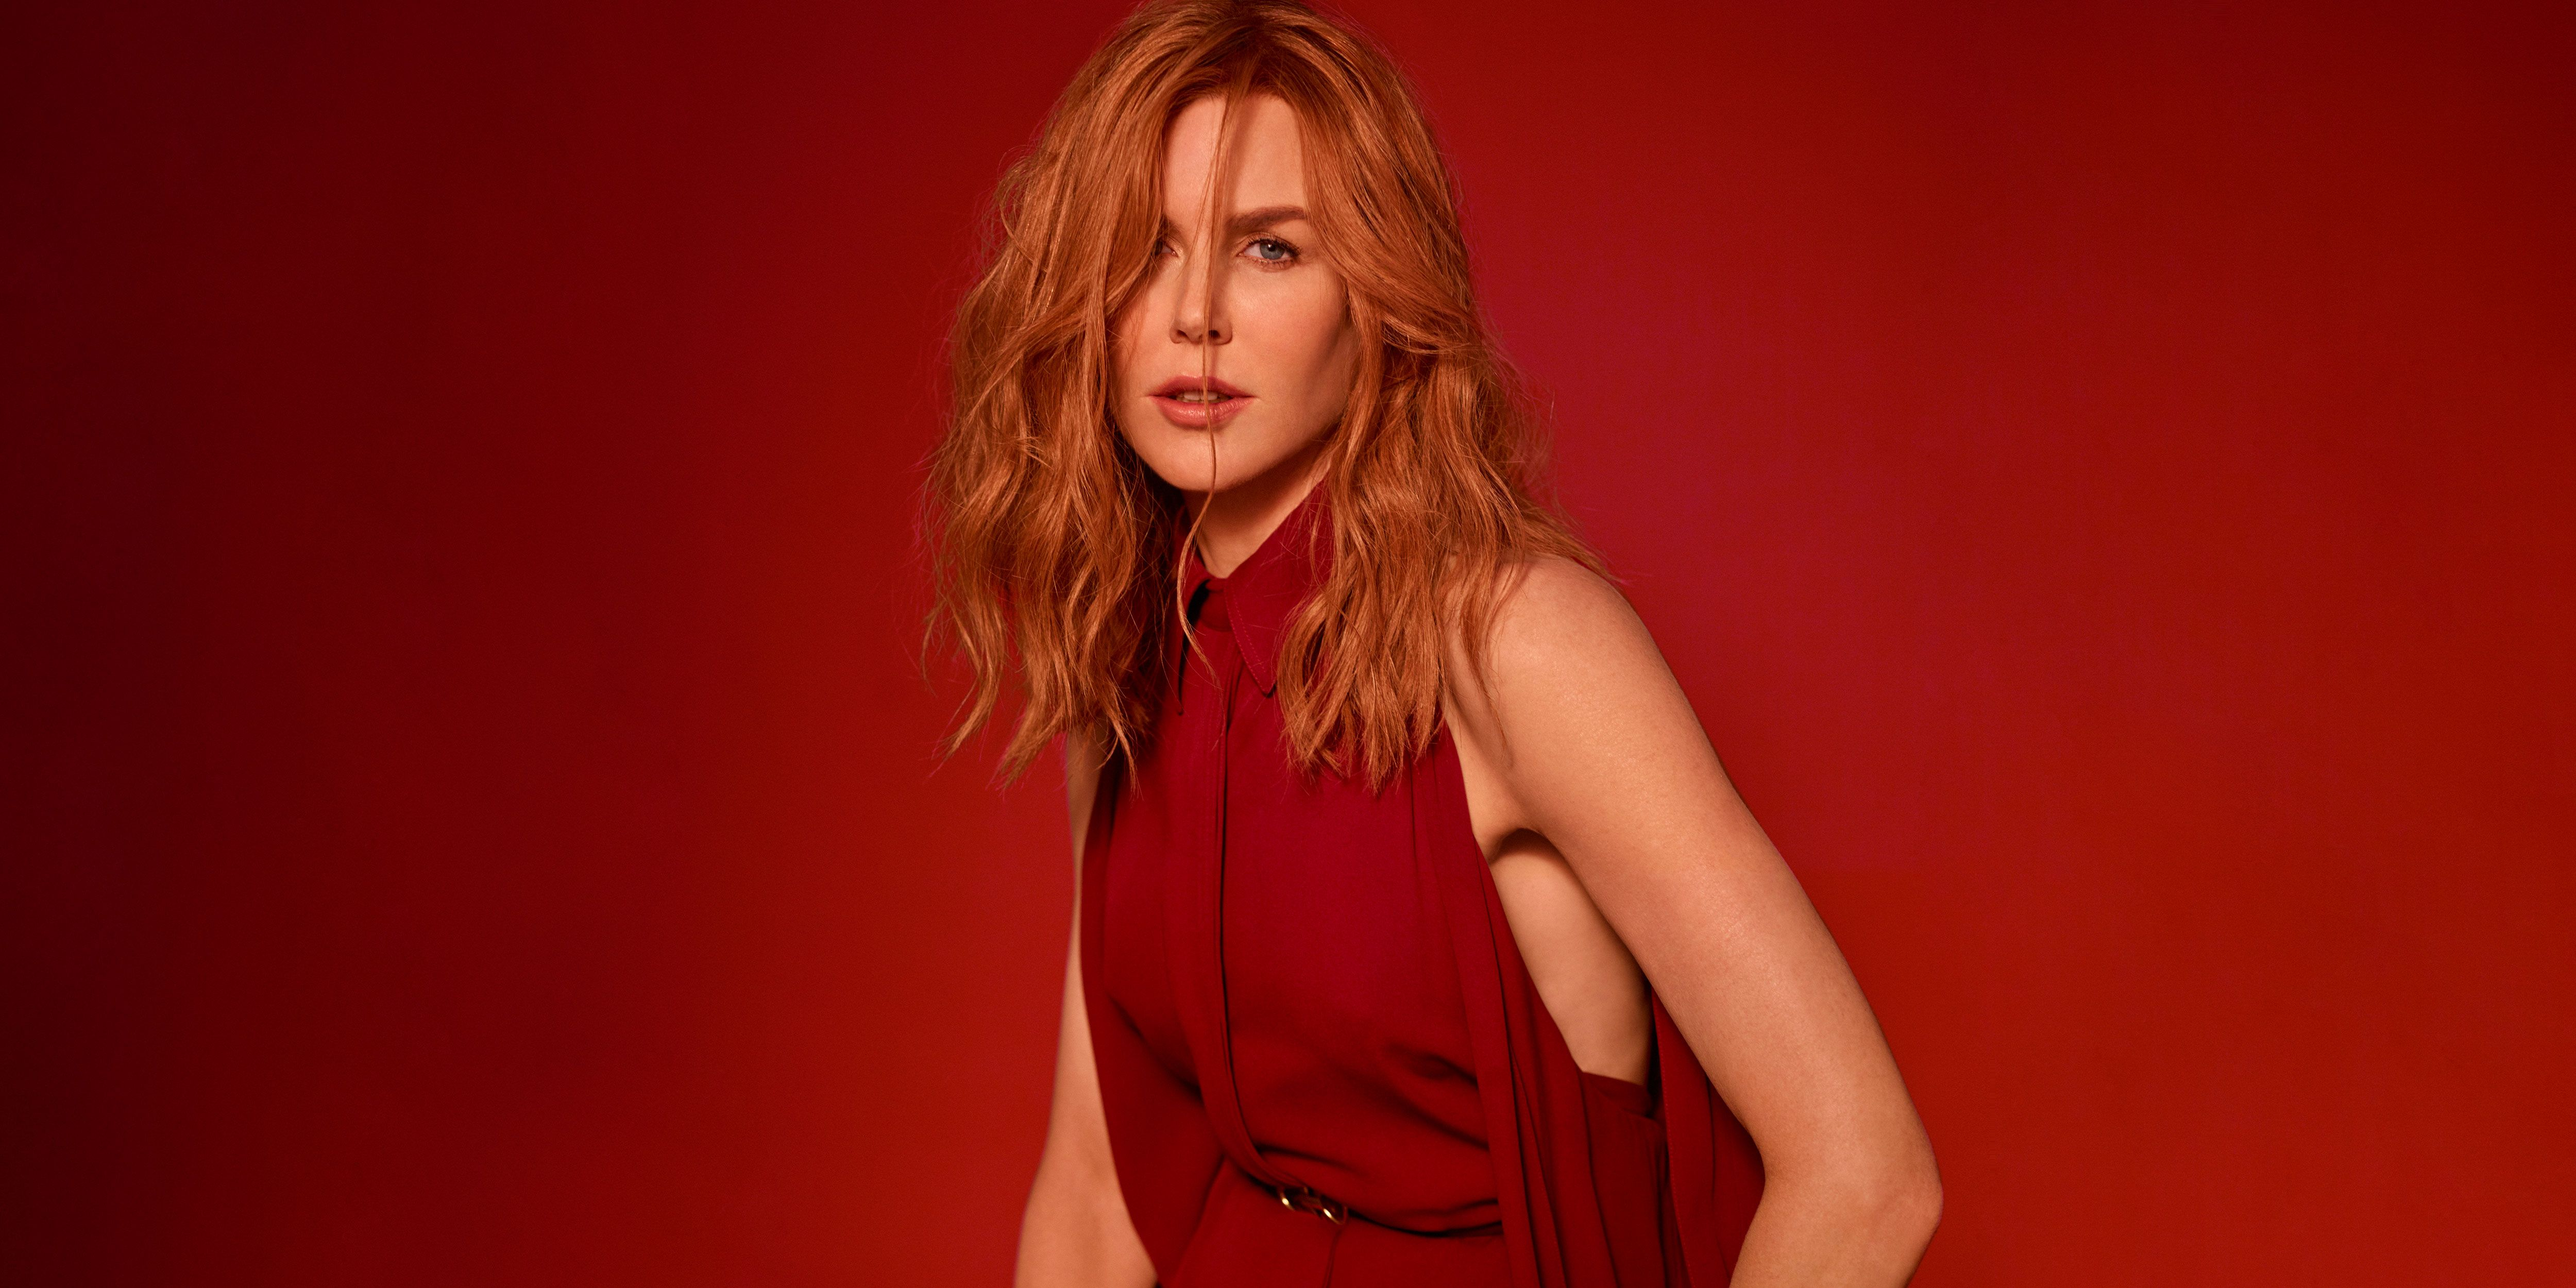 Exclusive: Nicole Kidman talks to Marie Claire